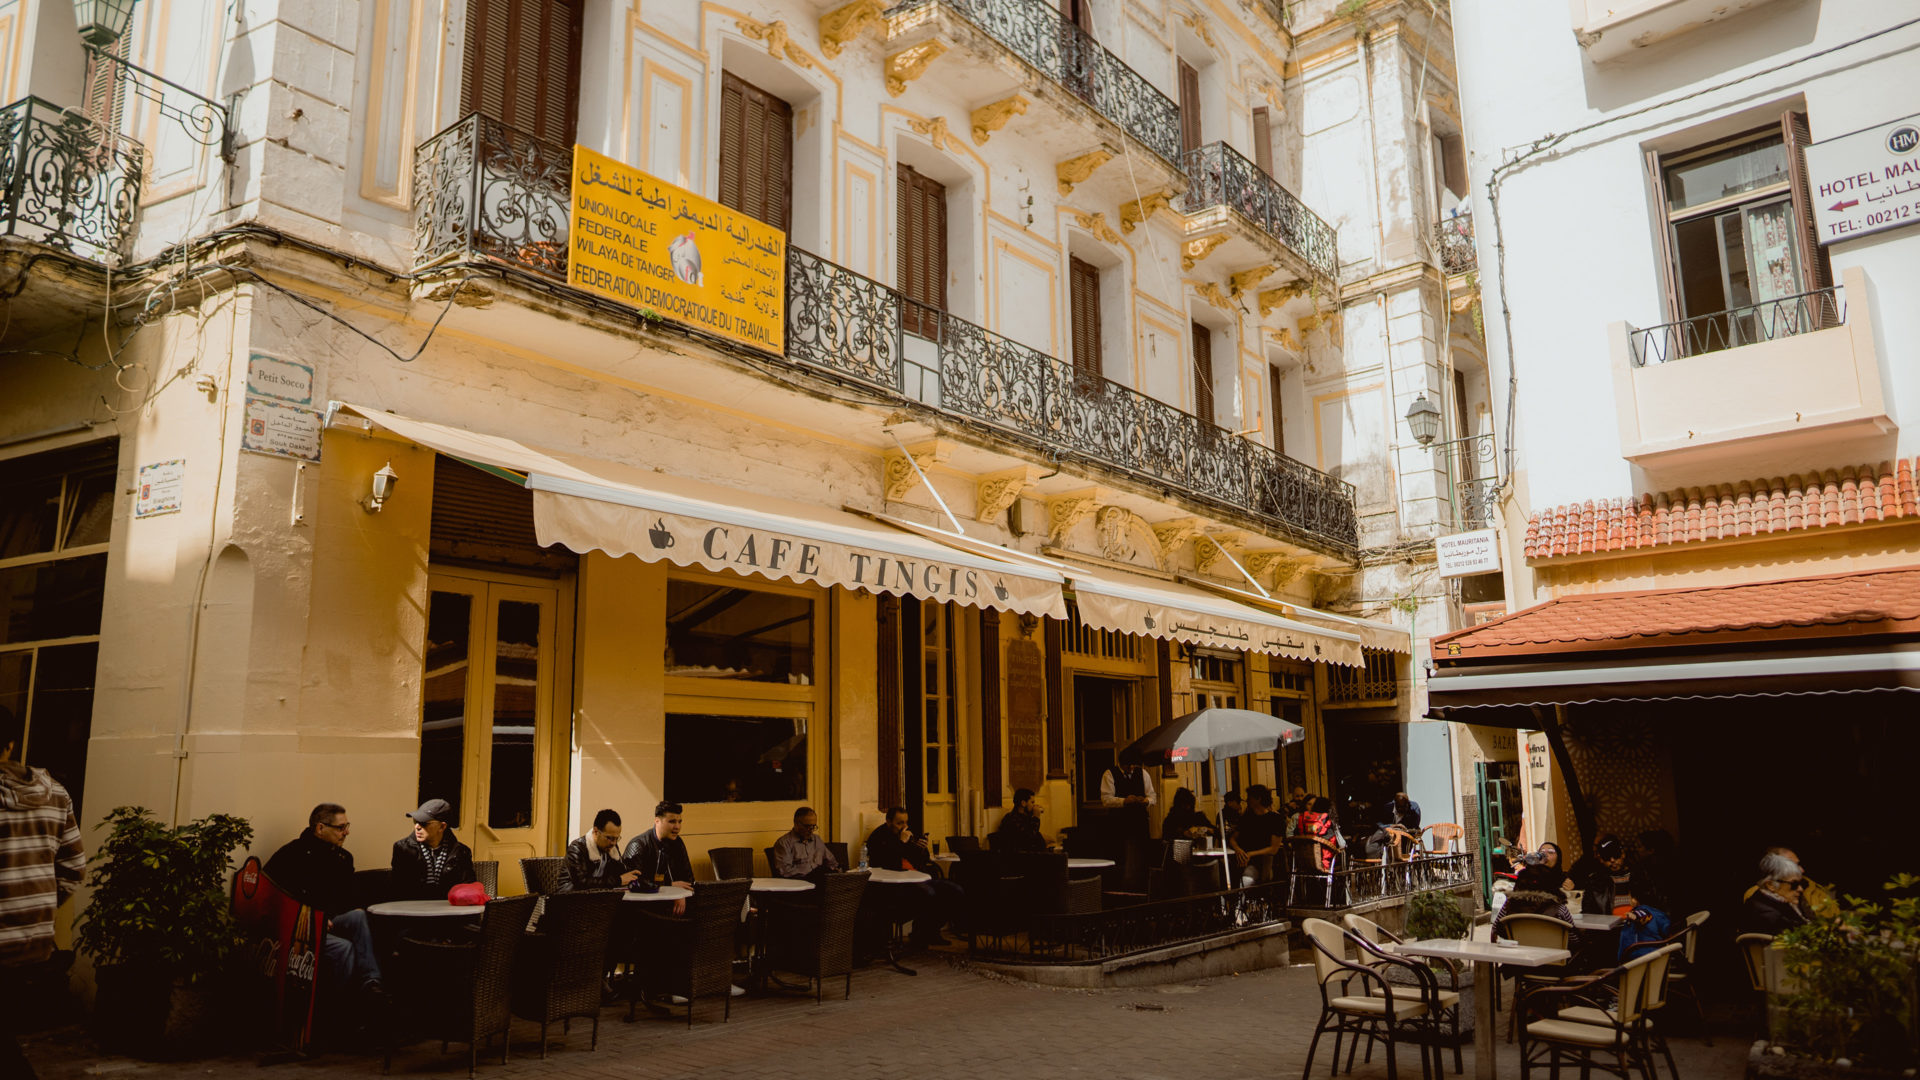 Café Tingis to the left and Café Central to the right.